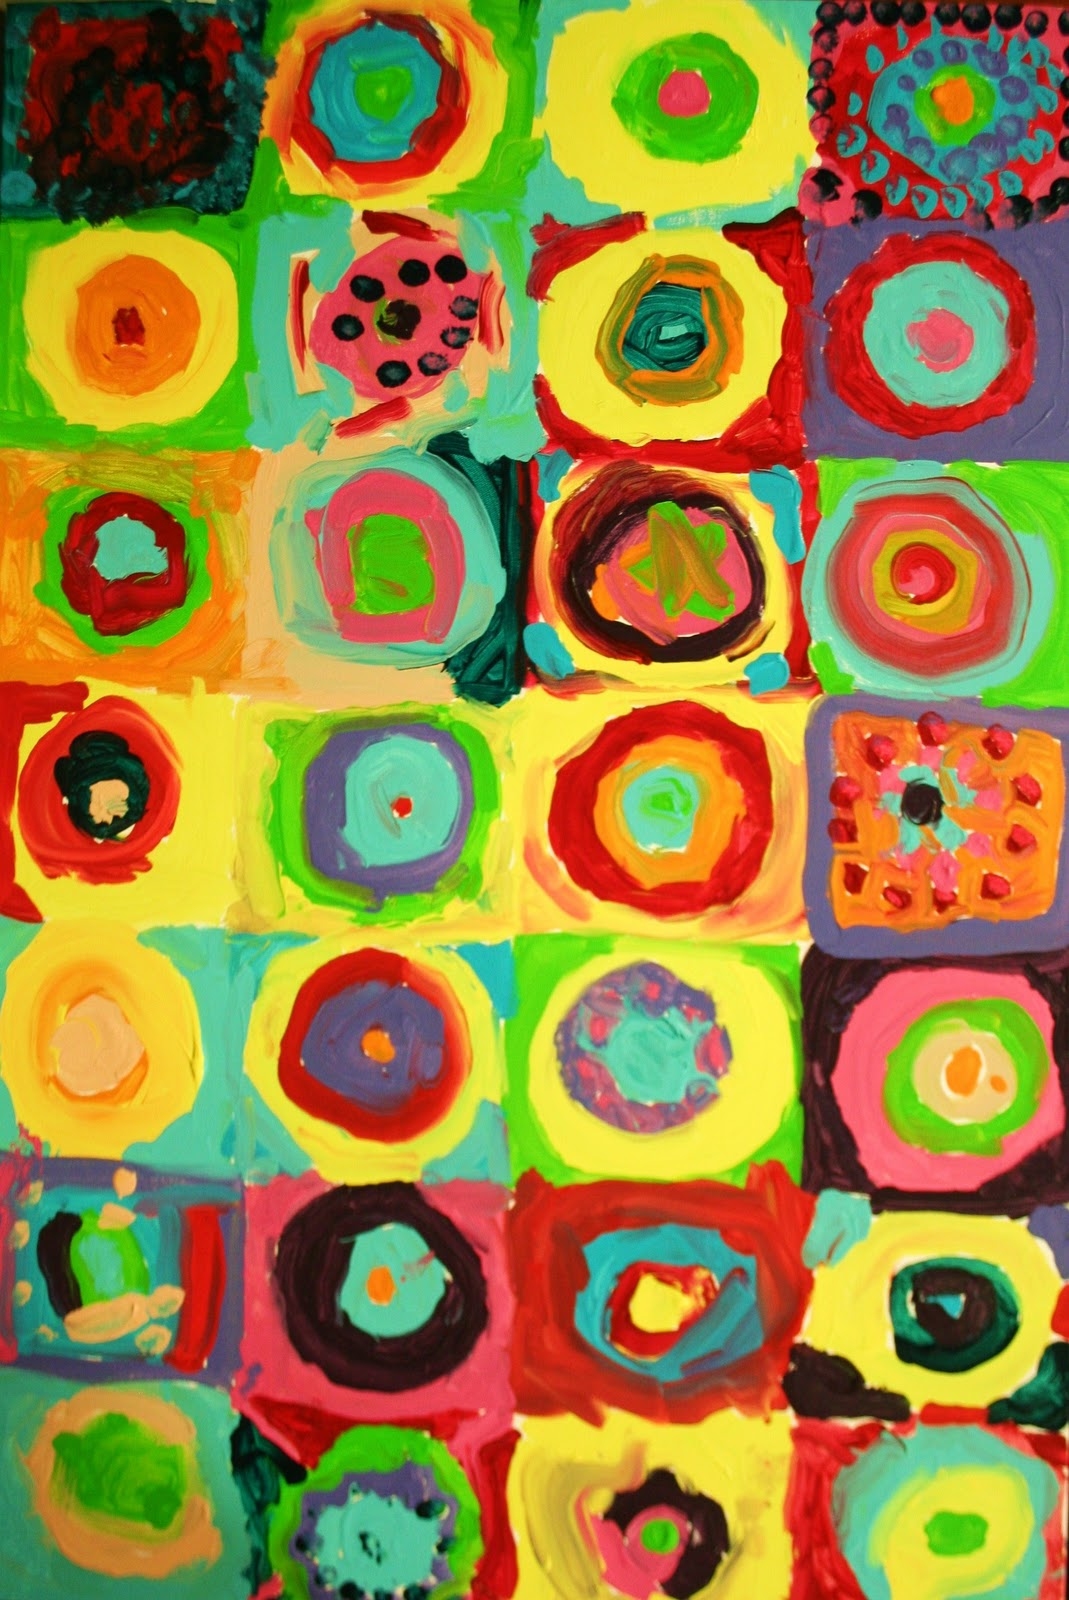 Wassily Kandinskys paintings are perfect to share with young children his abstract artwork is full of recognizable shapes and colors! We created a printable